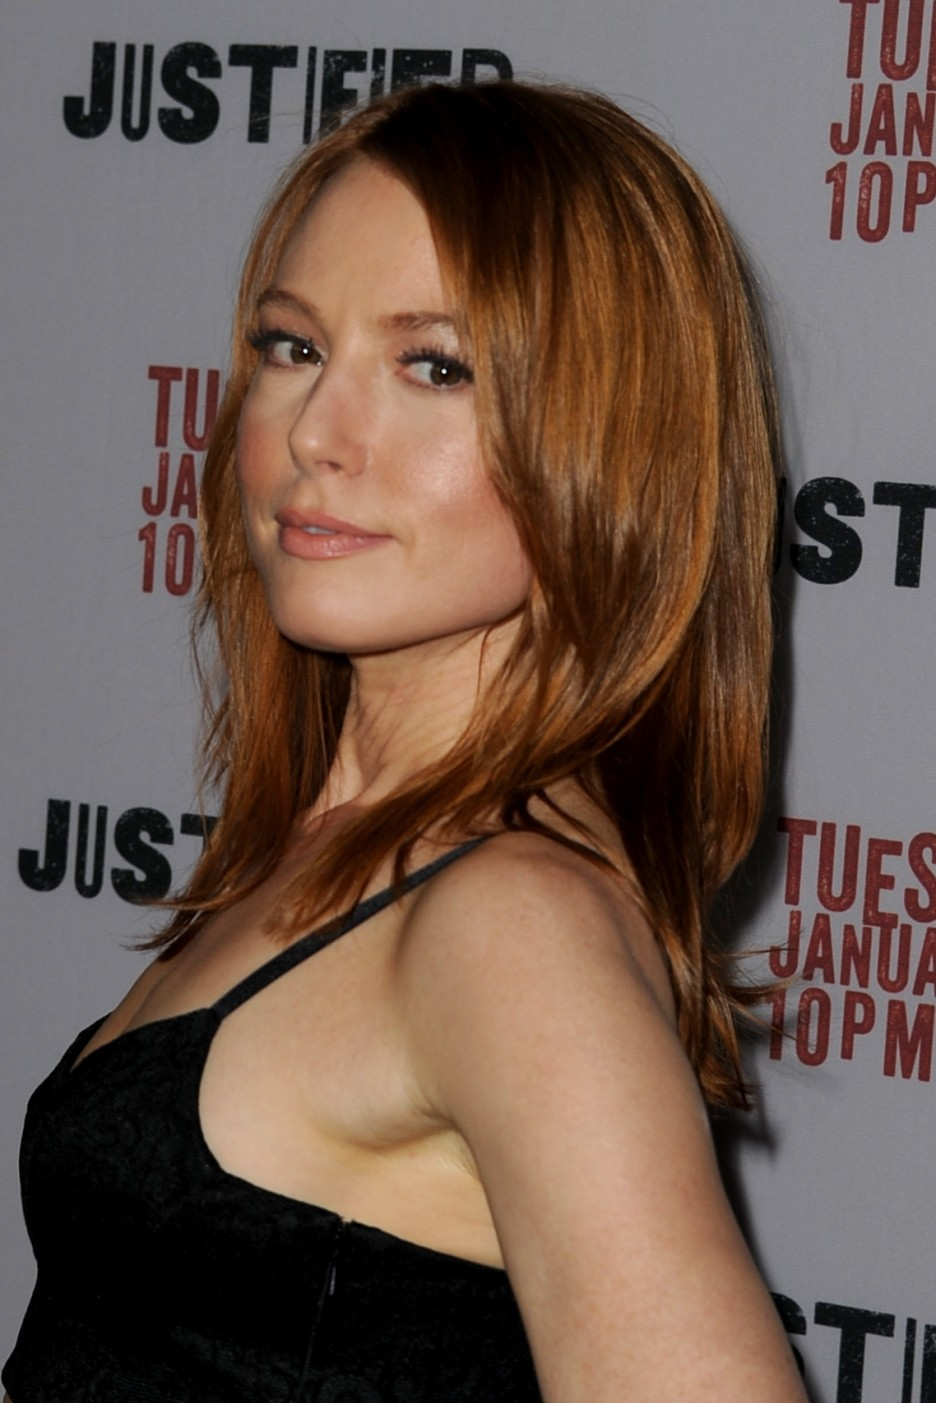 Not the Actress alicia witt nude confirm. All